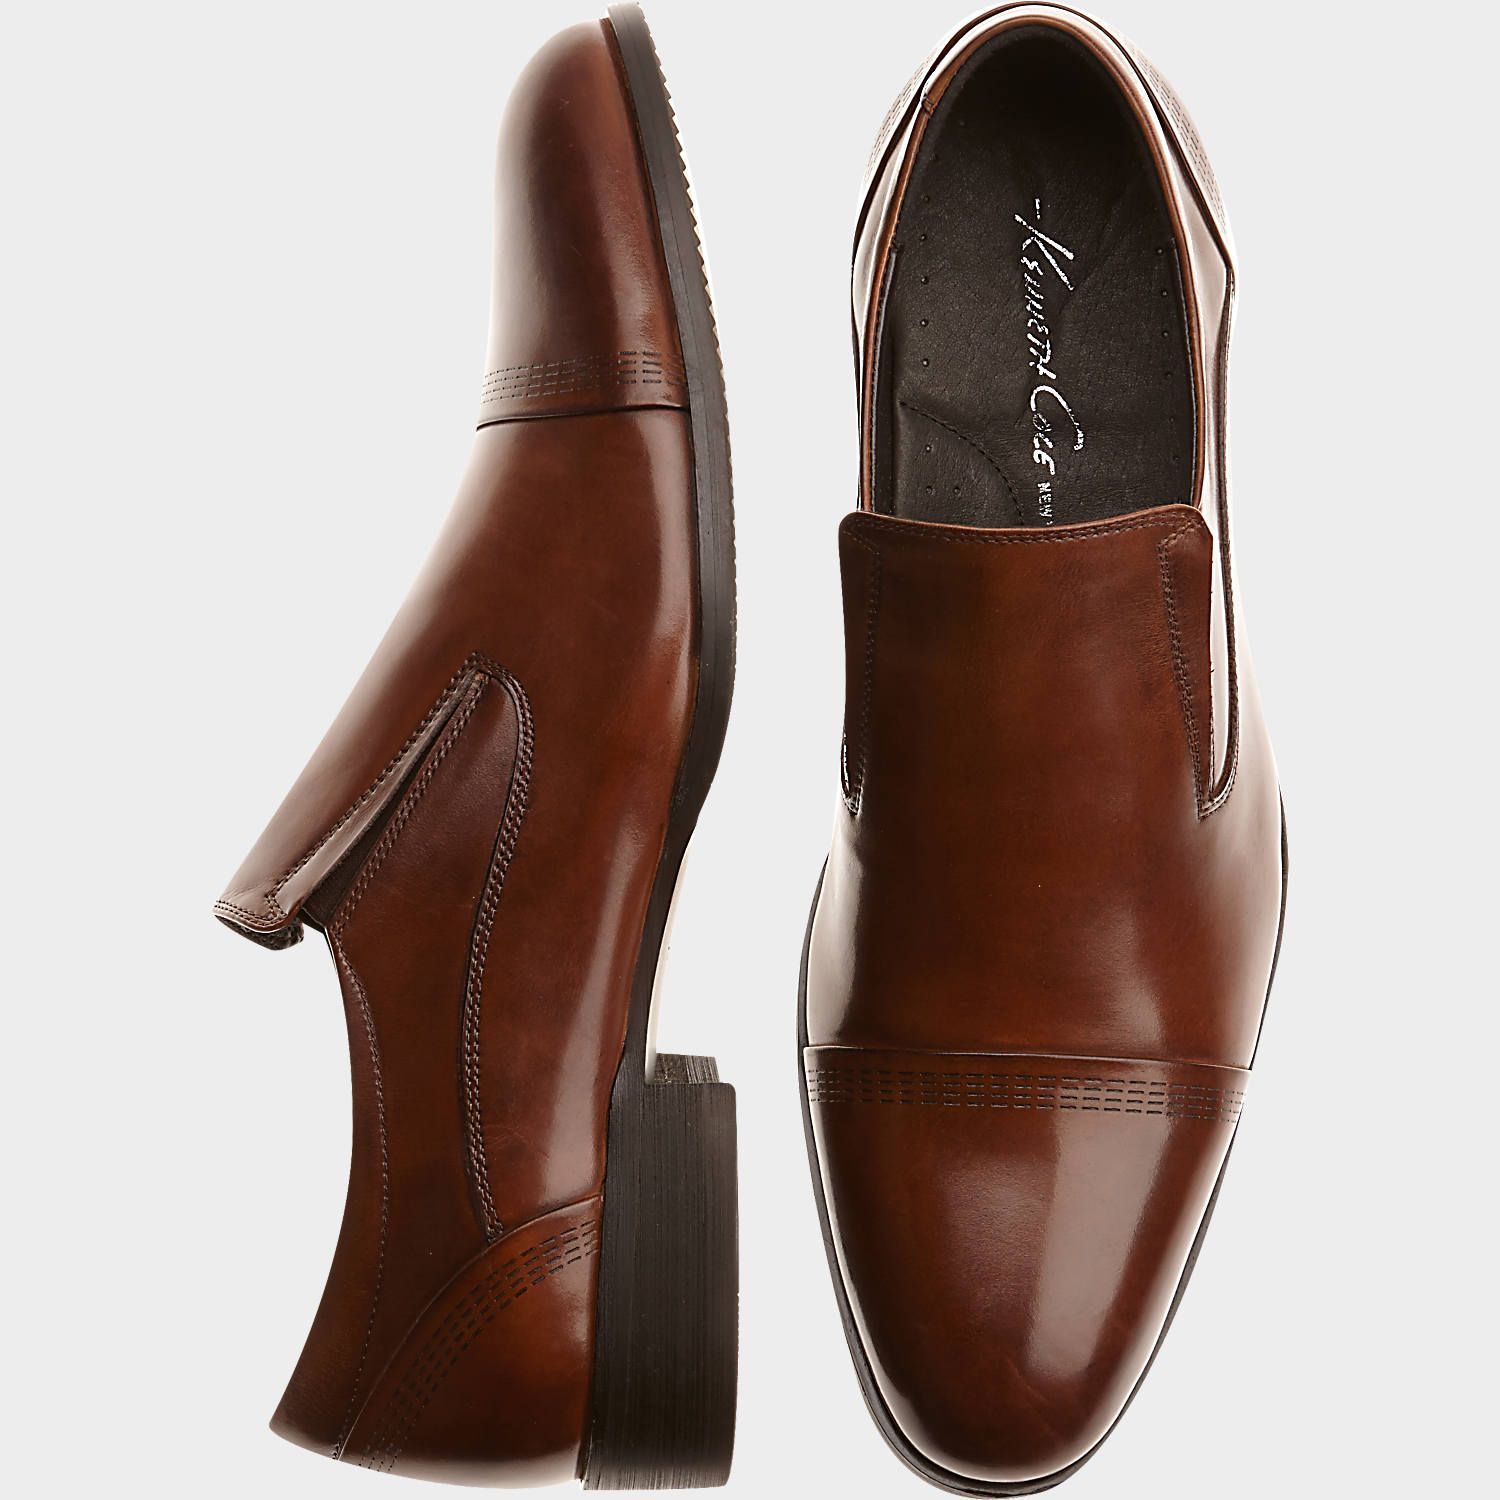 Buy a Kenneth Cole Knight Watch Brown Leather Loafers and other Dress Shoes  at Men's Wearhouse. Browse the latest styles, brands and selection in men's  ...